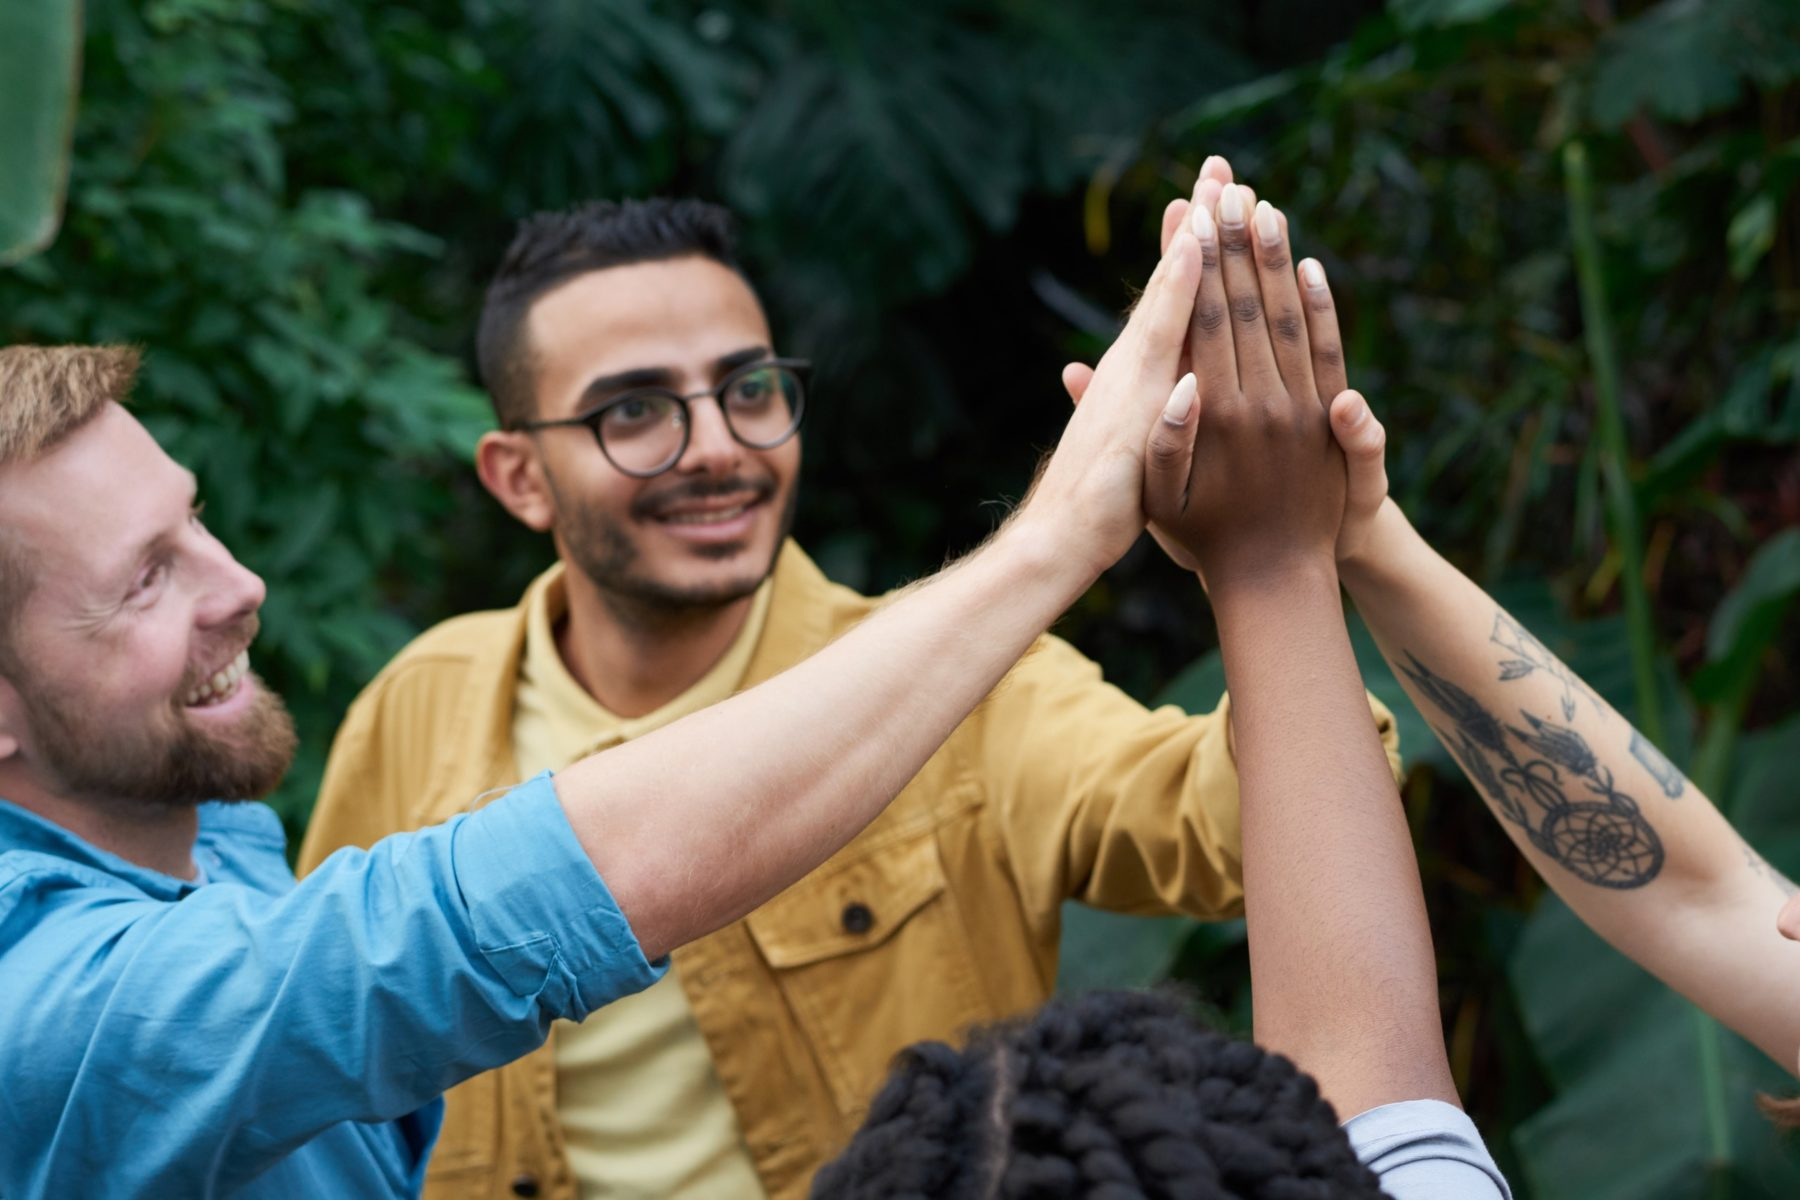 Group of people engaging through joining hands